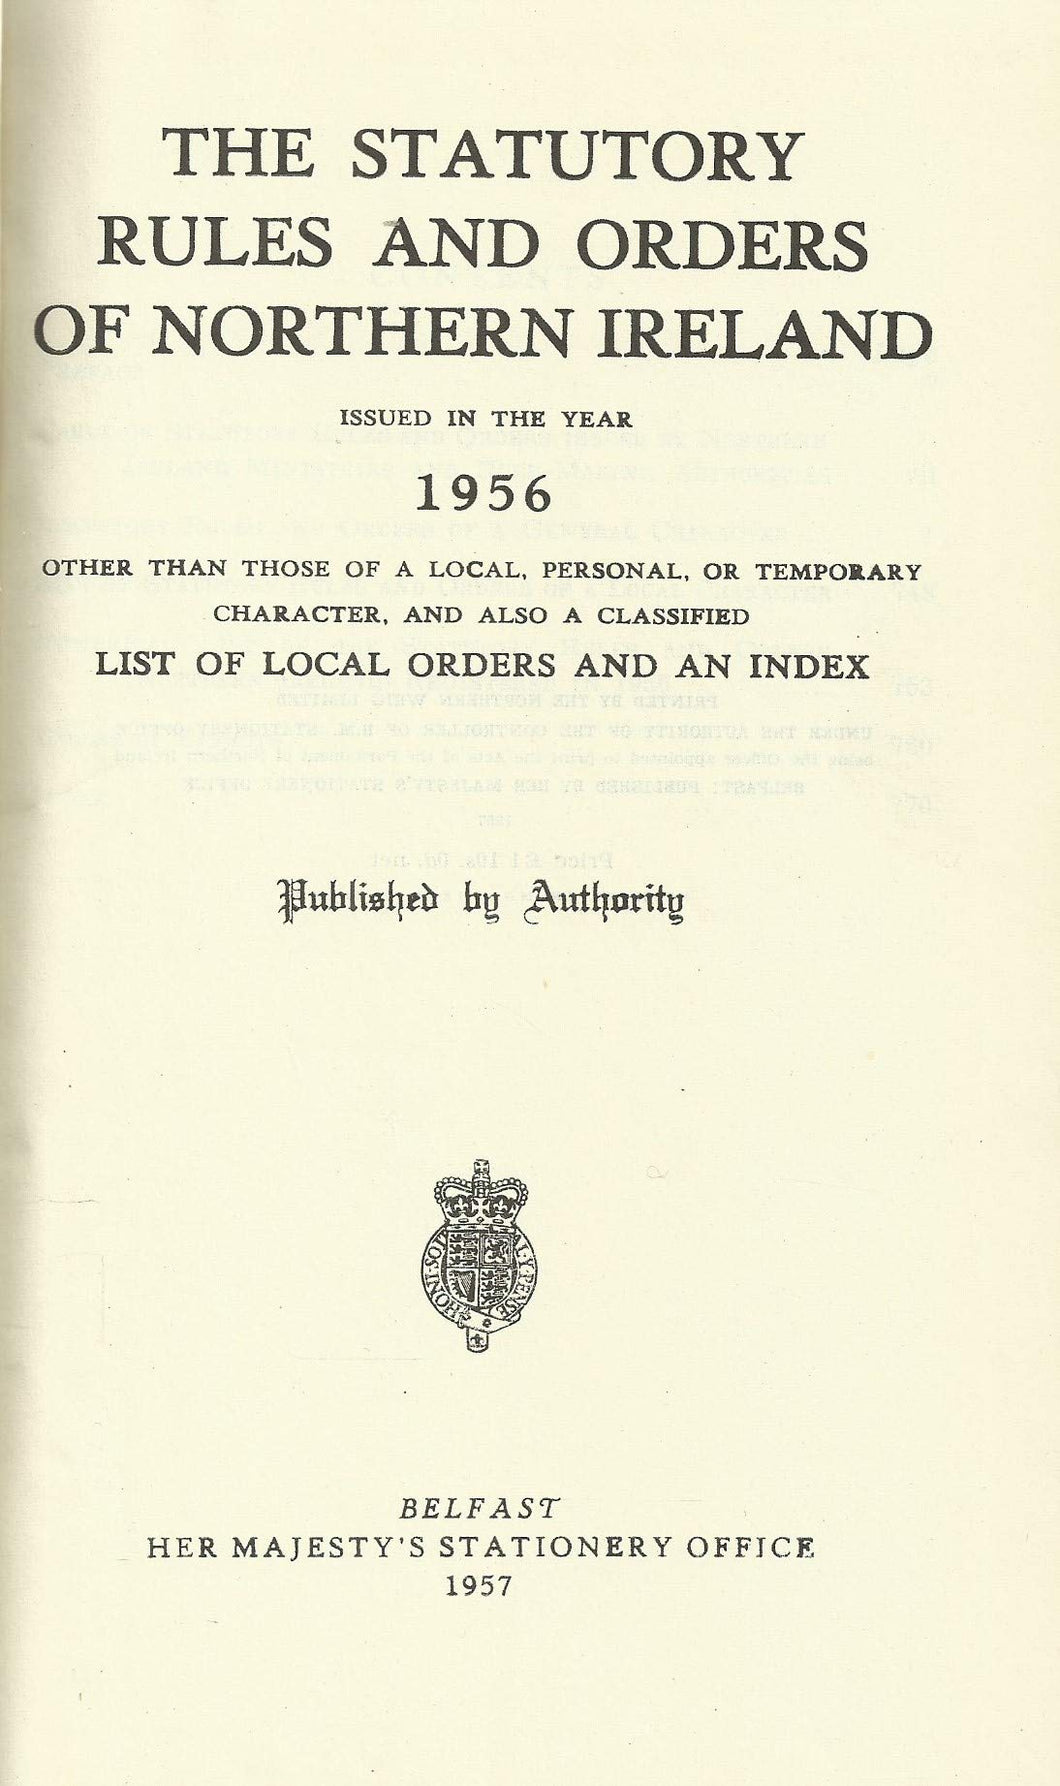 Northern Ireland Statutory Rules and Orders, 1956 - The Statutory Rules and Orders of Northern Ireland